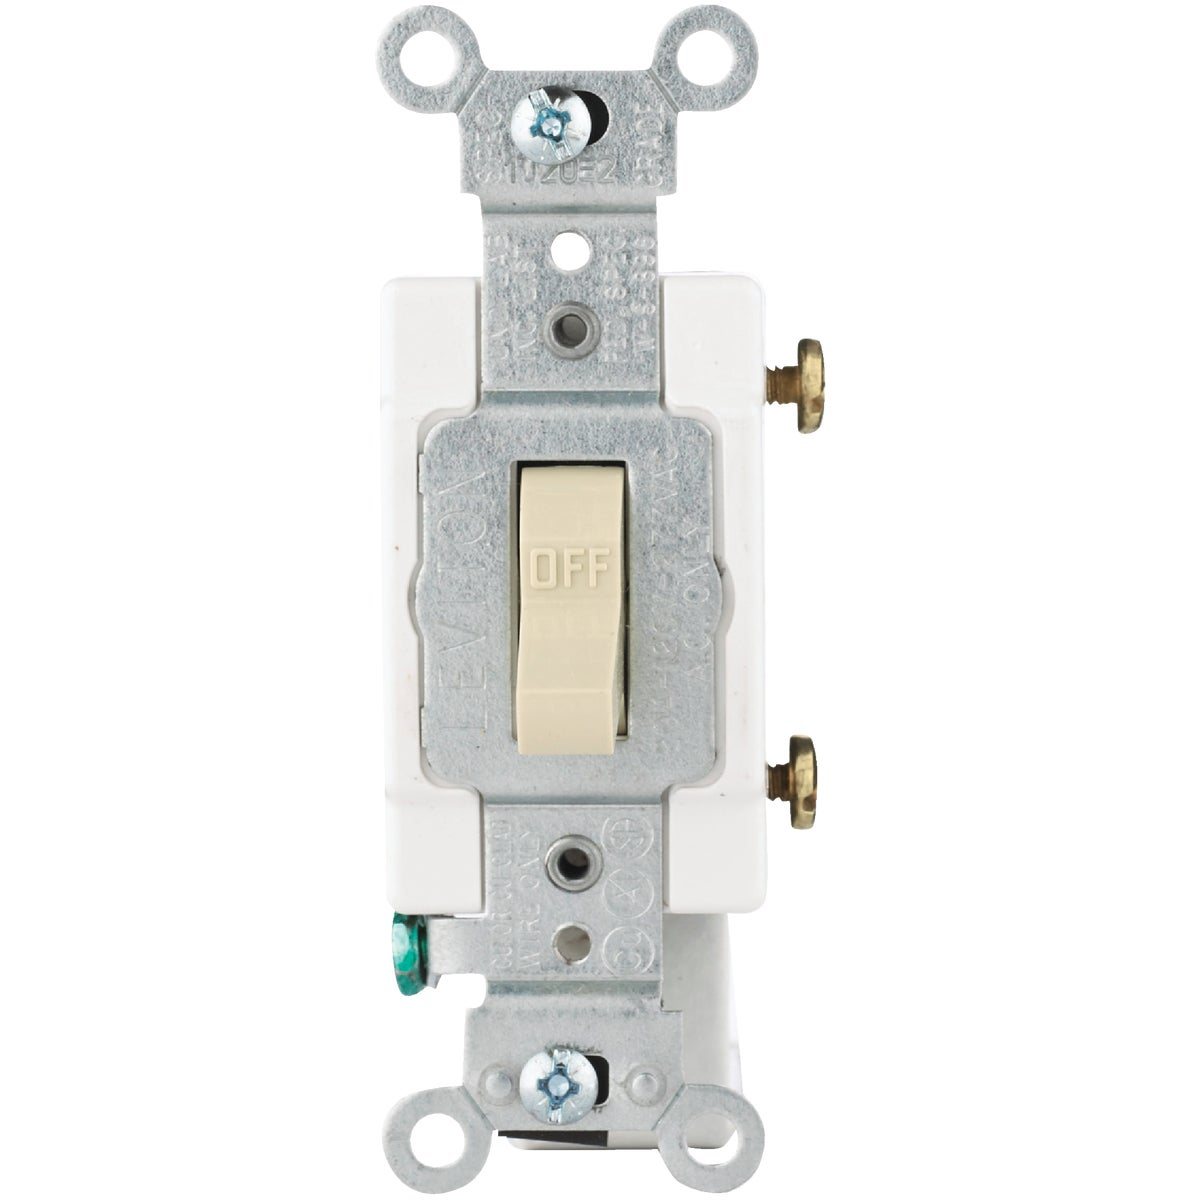 IV 1-POLE GRND SWITCH - S01-CS115-2IS by Leviton Mfg Co